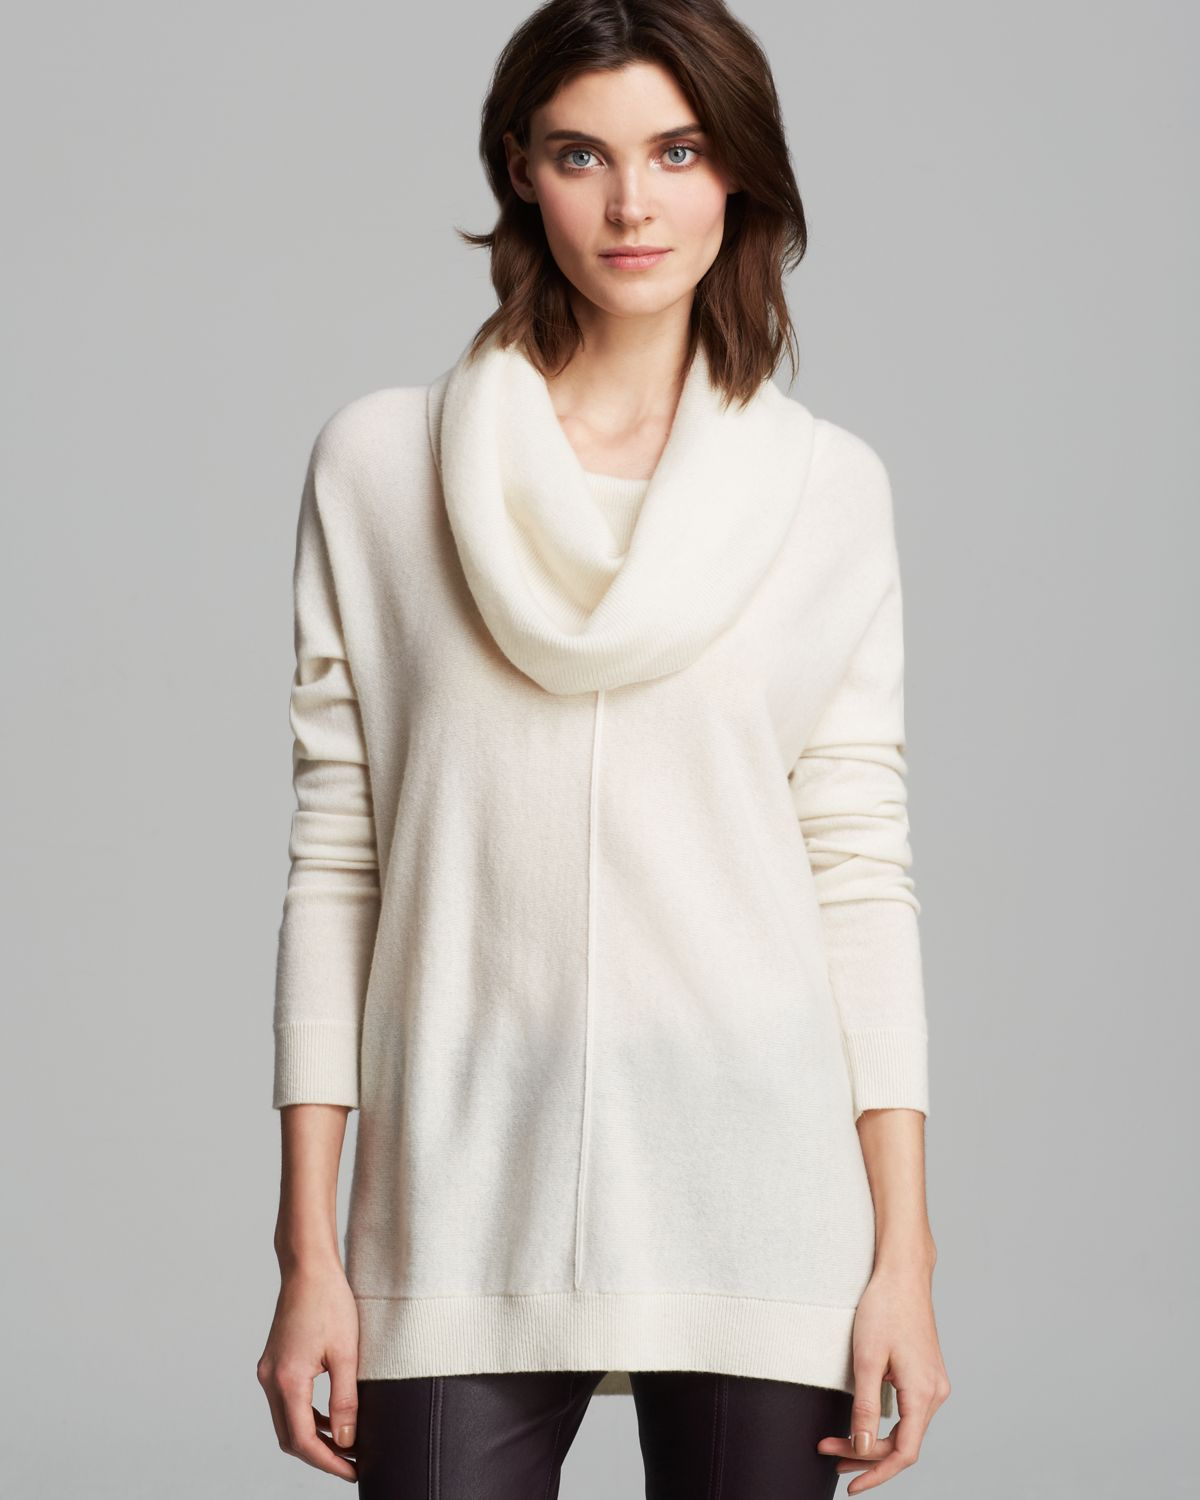 White Cashmere Cowl Neck Sweater Her Sweater